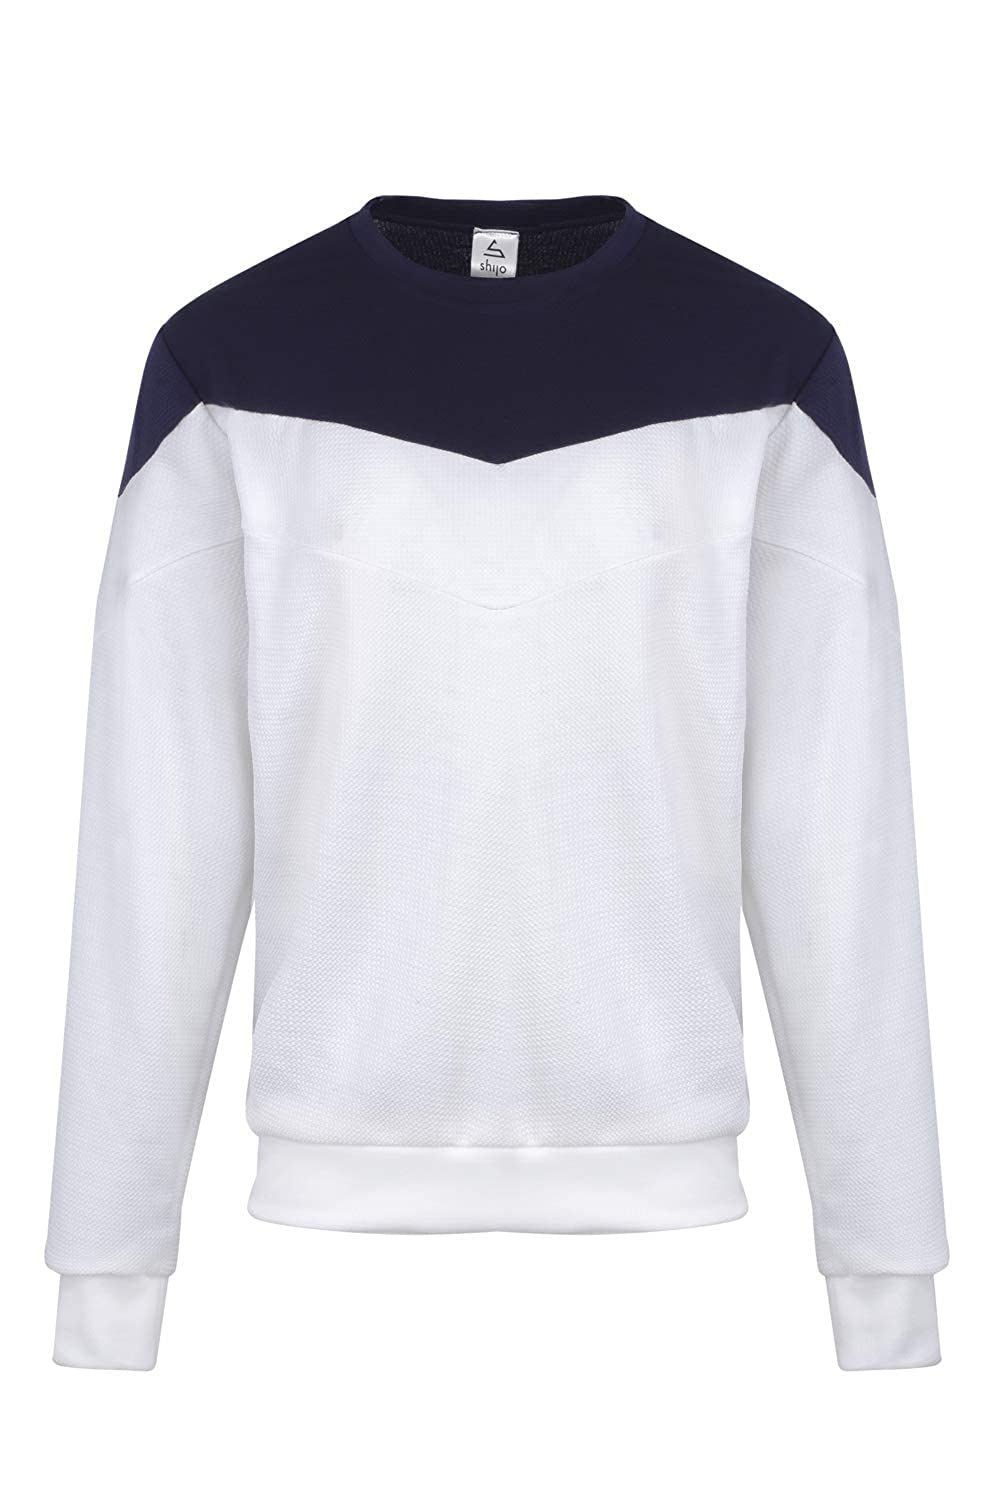 Made in France Long Sleeves Simy- Sweatshirt for Men Sweatshirt Slim and Ideal for Sports and for City